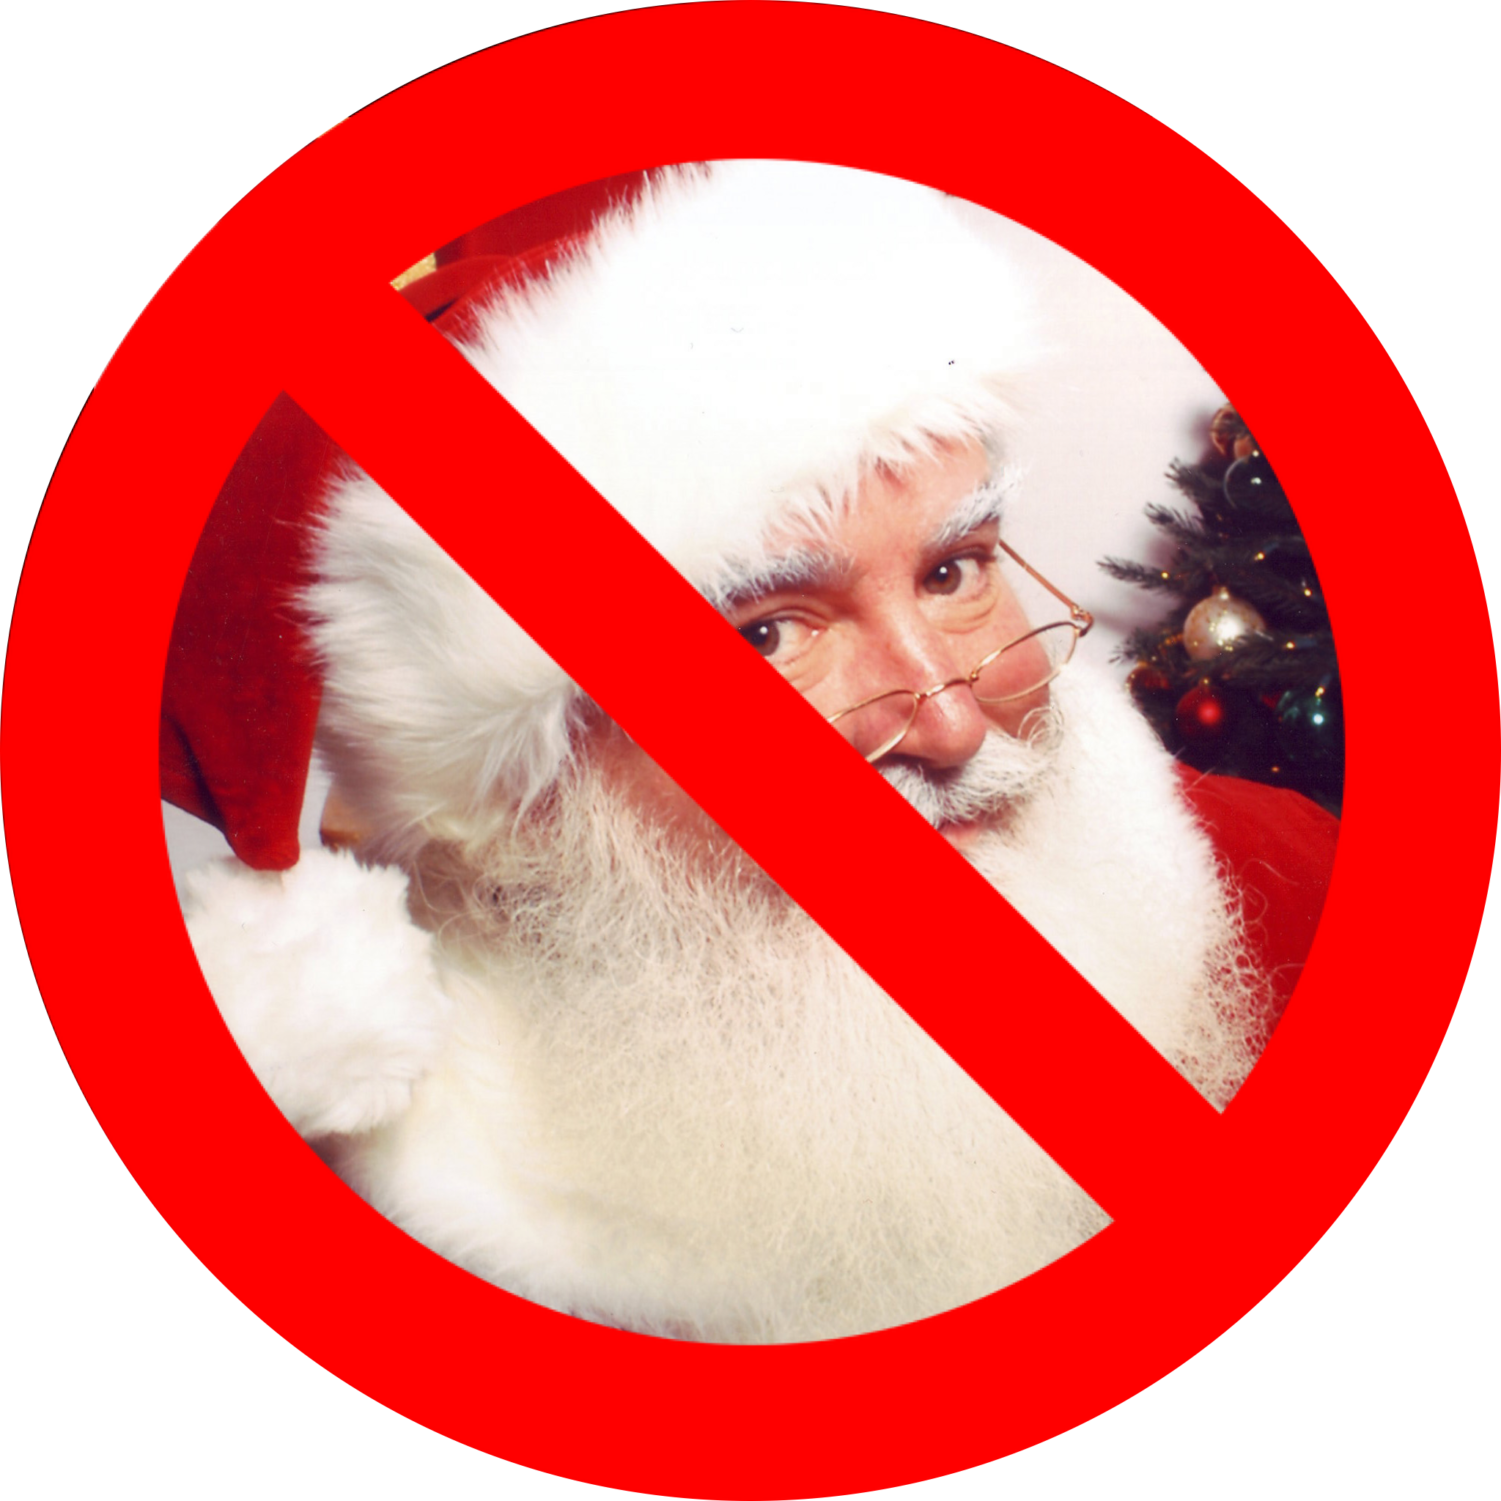 Santa can't come out to play until I've thrown out an entire Turkey.  Santa from: https://www.google.com/url?sa=i&source=images&cd=&cad=rja&uact=8&ved=2ahUKEwiPrYnFl8flAhVJjp4KHWE6CEwQjhx6BAgBEAI&url=https%3A%2F%2Fcommons.wikimedia.org%2Fwiki%2FFile%3AJonathan_G_Meath_portrays_Santa_Claus.jpg&psig=AOvVaw2-EuNyjopYvEYe_JvvybX2&ust=1572634858874994